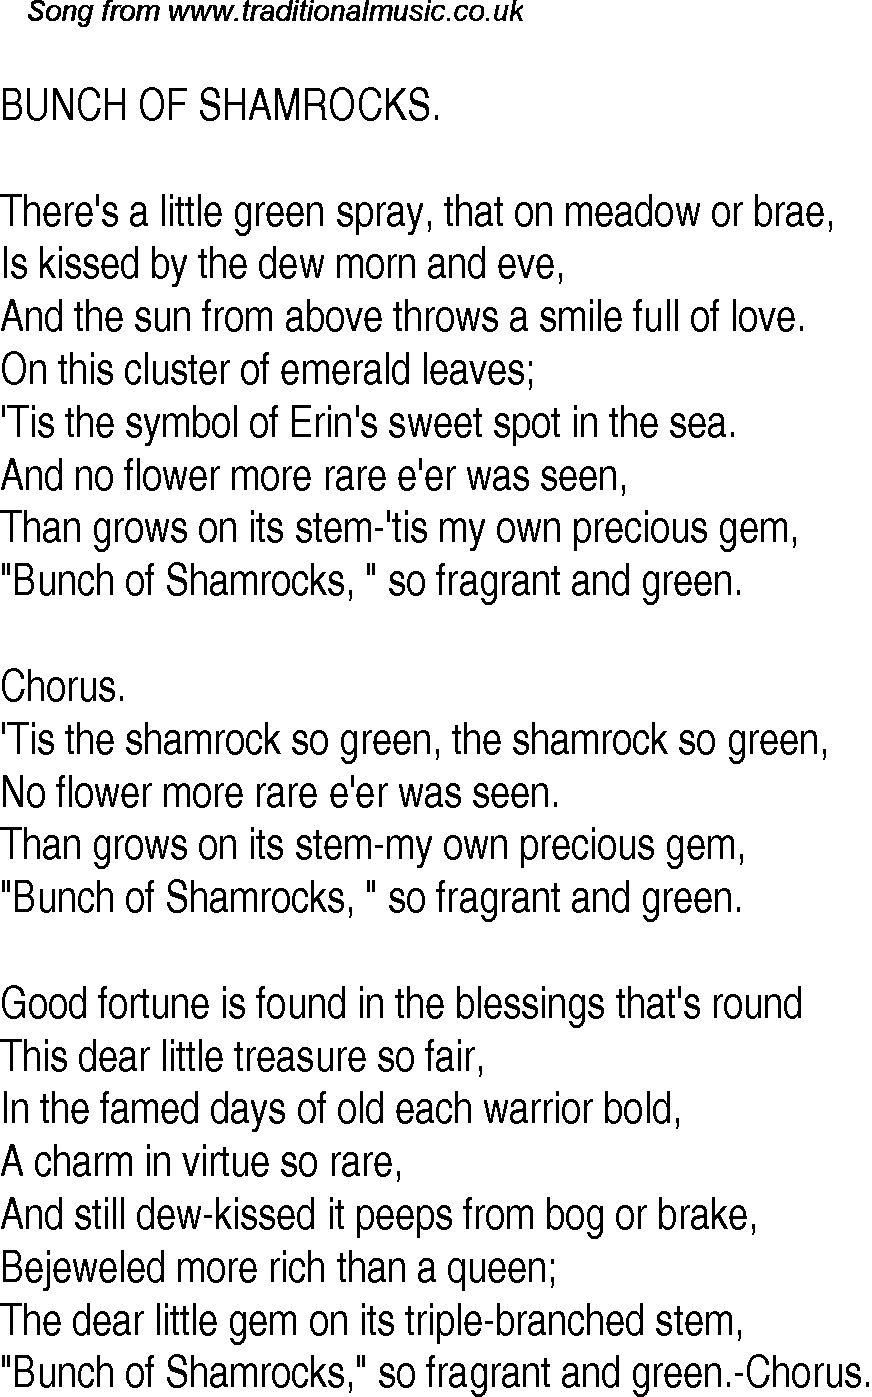 Old time song lyrics for 18 bunch of shamrocks inclusion in dtp etc biocorpaavc Choice Image